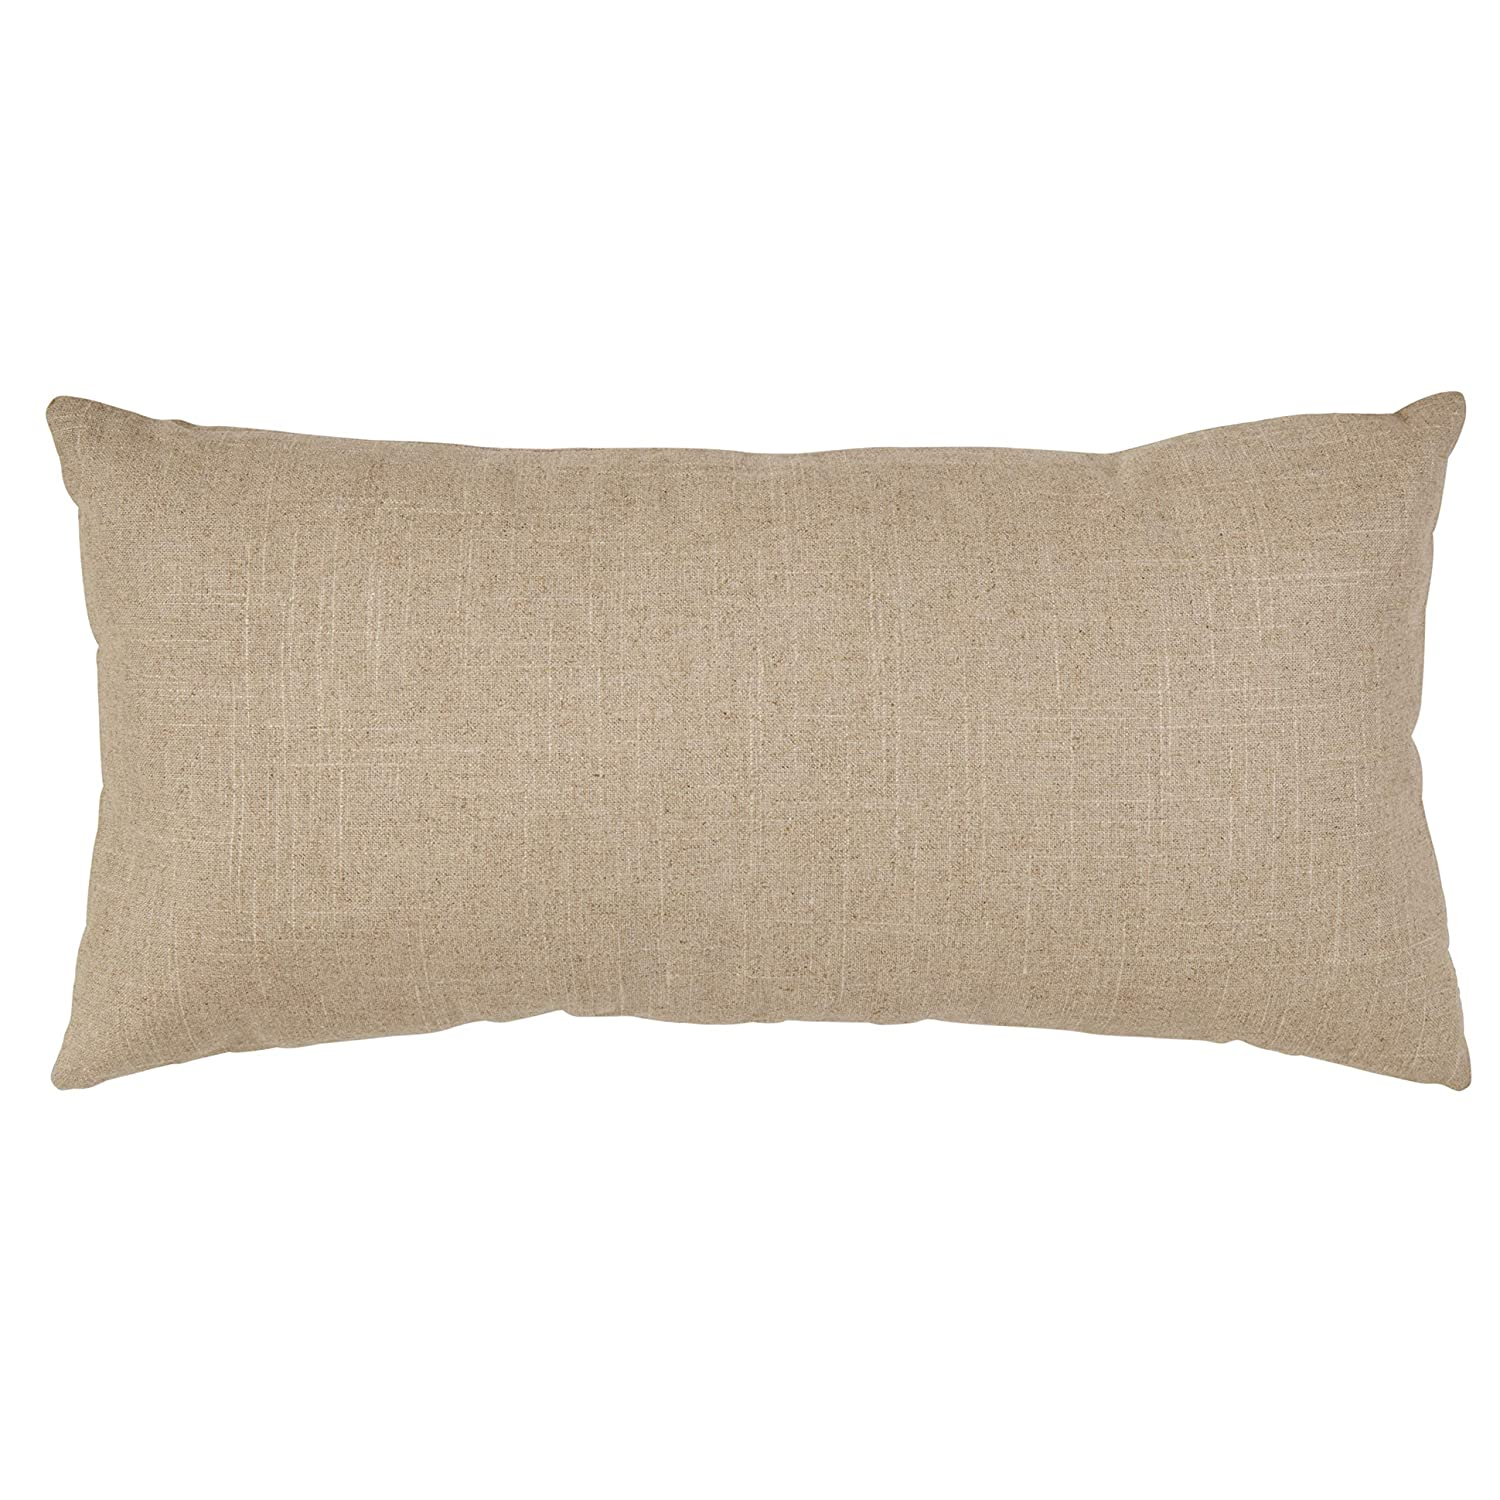 Stone Beam Industrial Leather Detail Throw Pillow – 24 x 12 Inch, Flax with Dark Brown